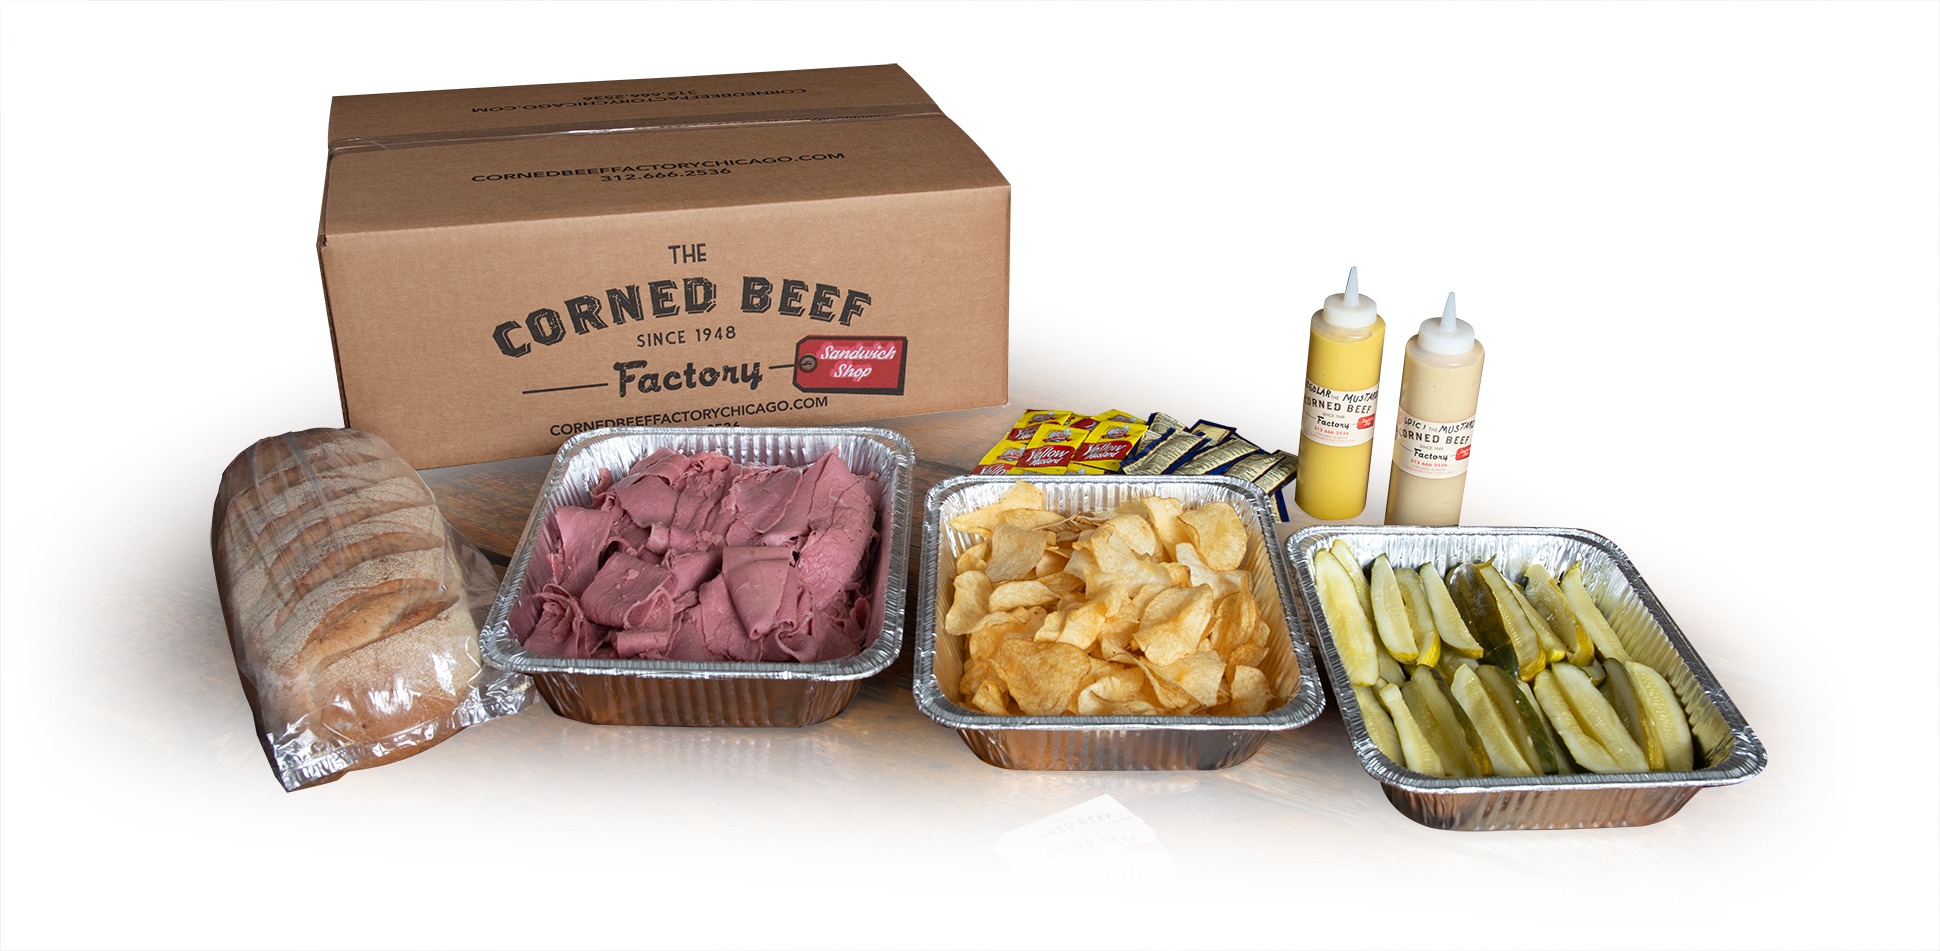 Corned-Beef-Factory-3991.png